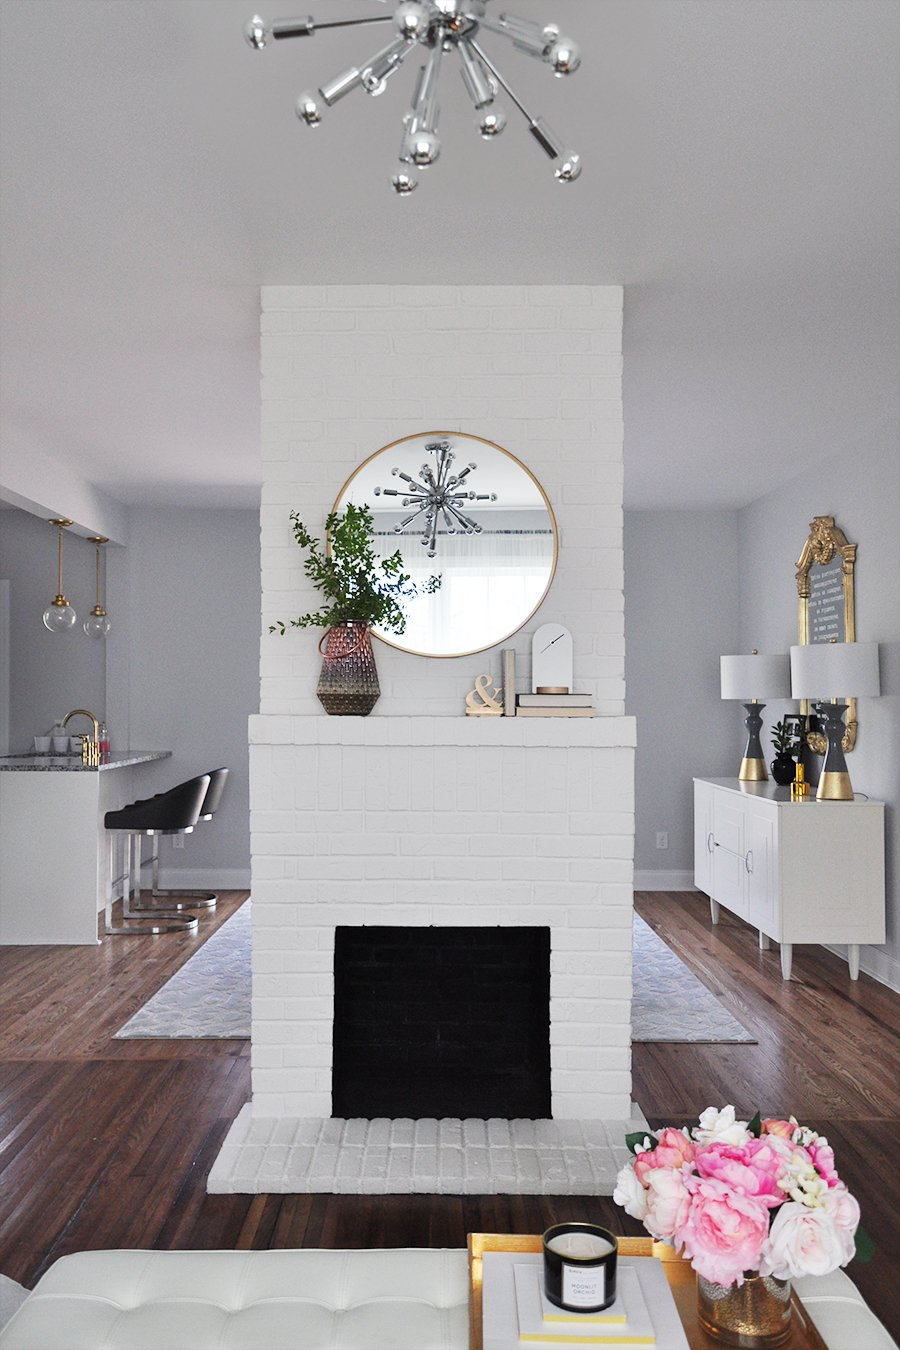 Fireplace Decor 3 Simple Ways to Decorate Your Mantle for